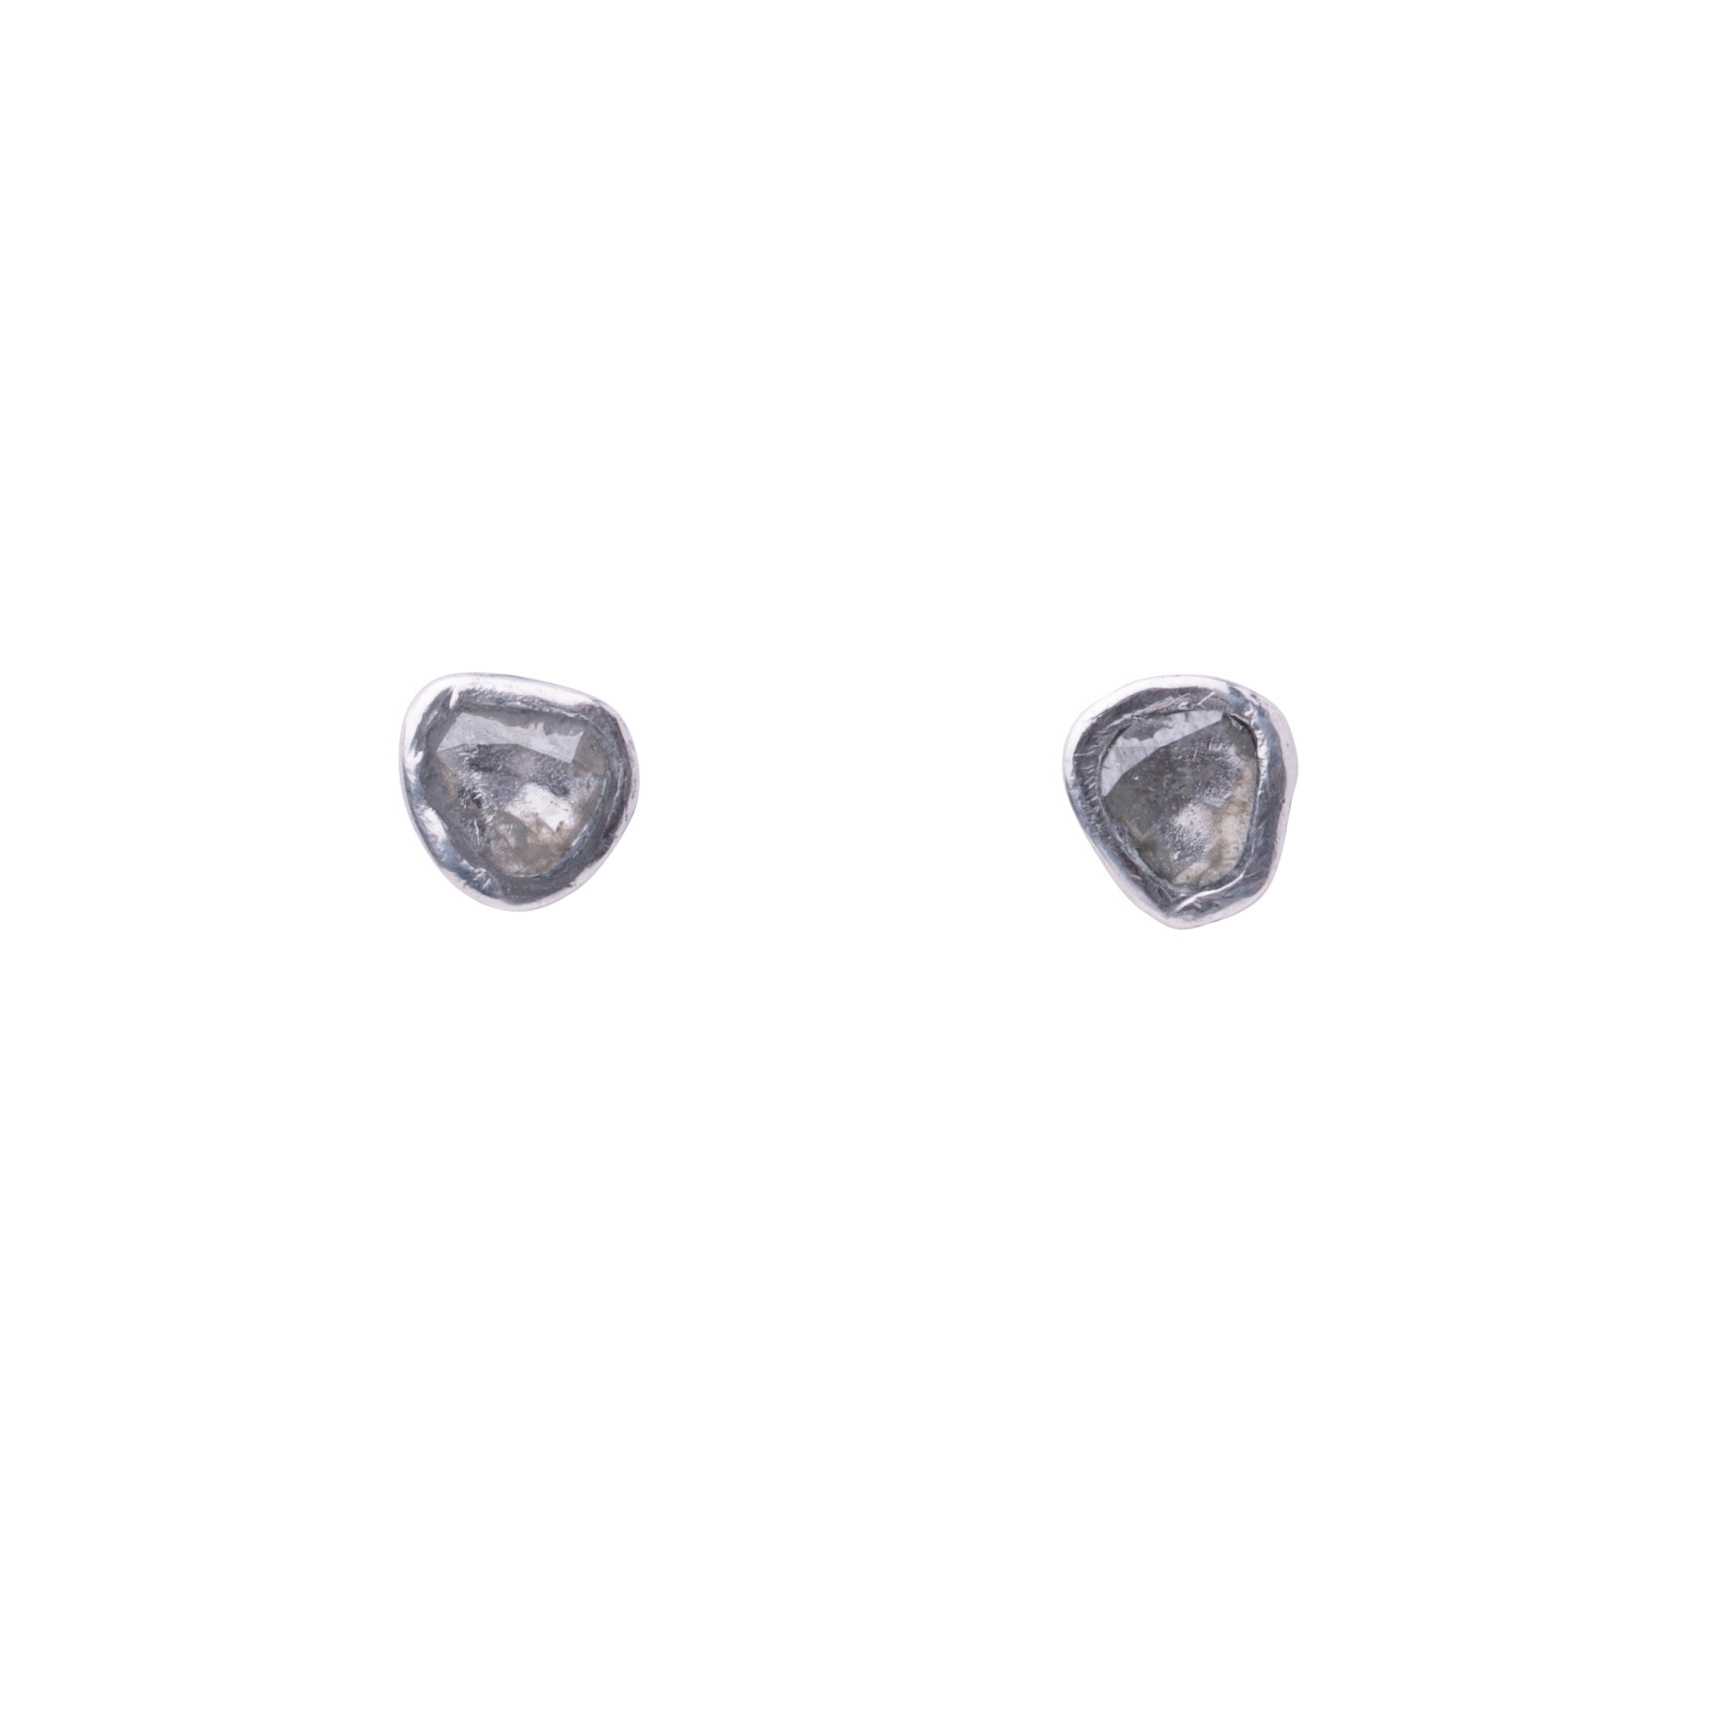 Earrings_stud-002.JPG